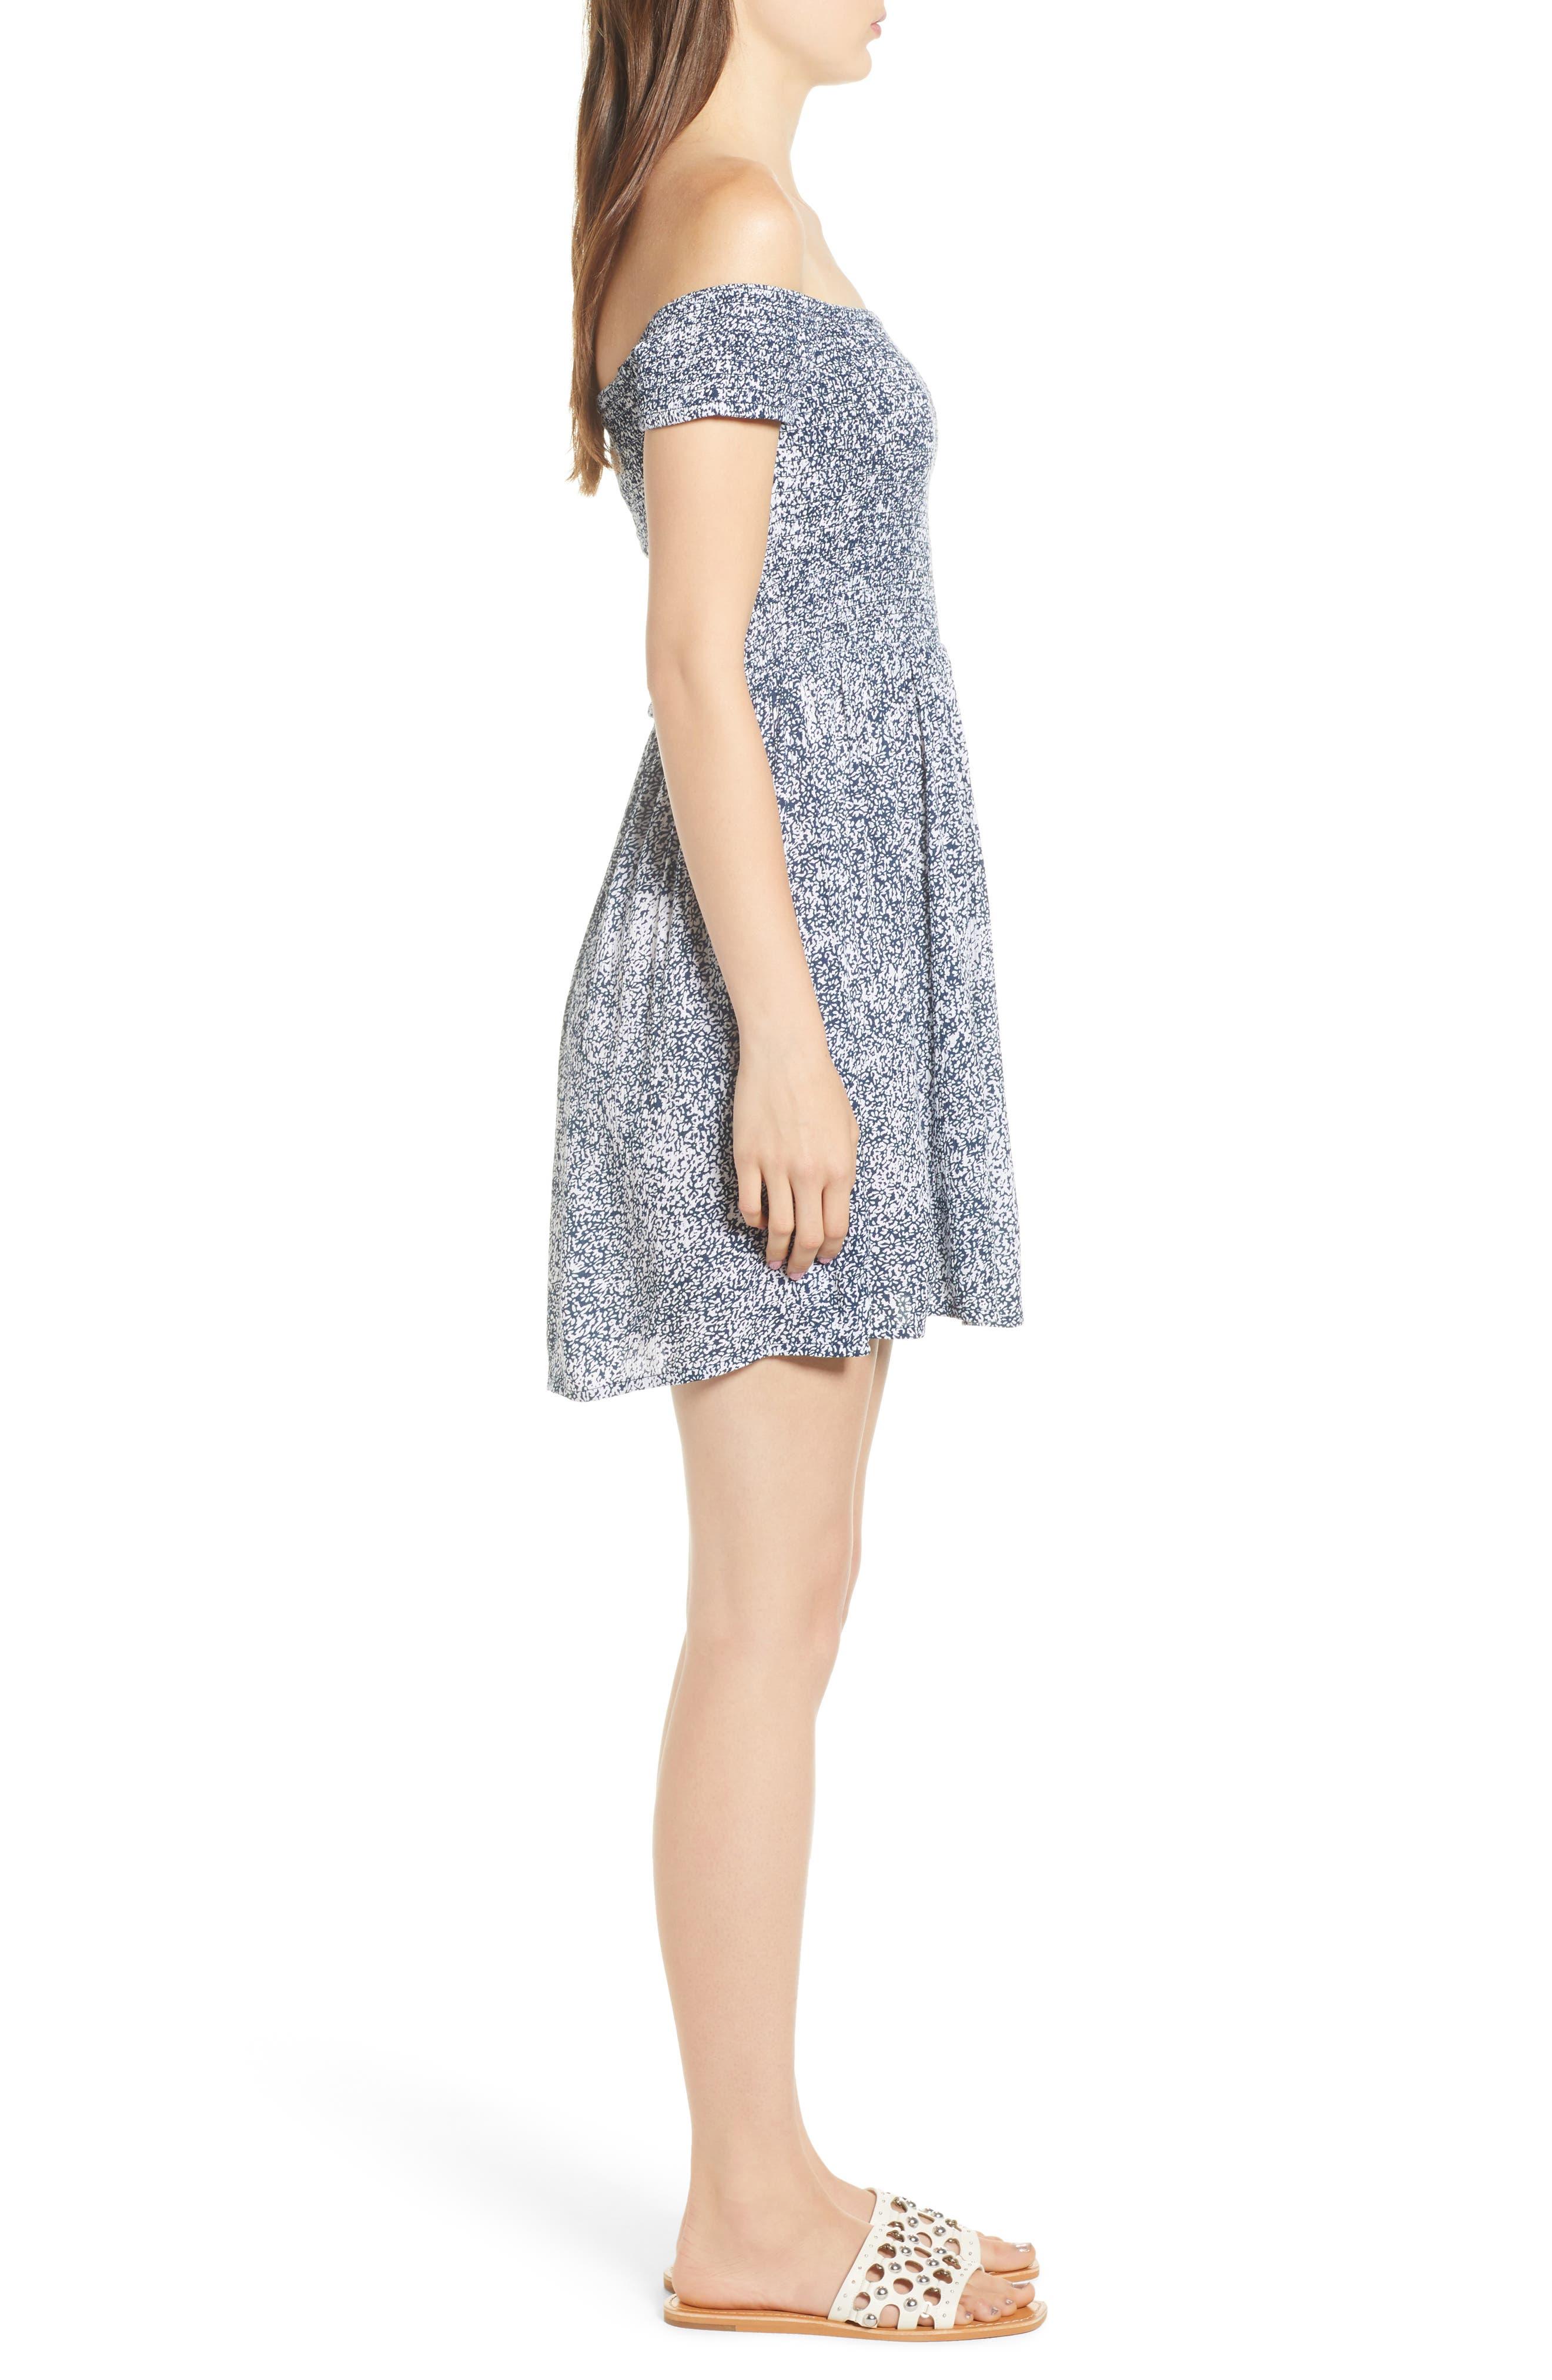 She's So Daisy Off the Shoulder Dress,                             Alternate thumbnail 3, color,                             415